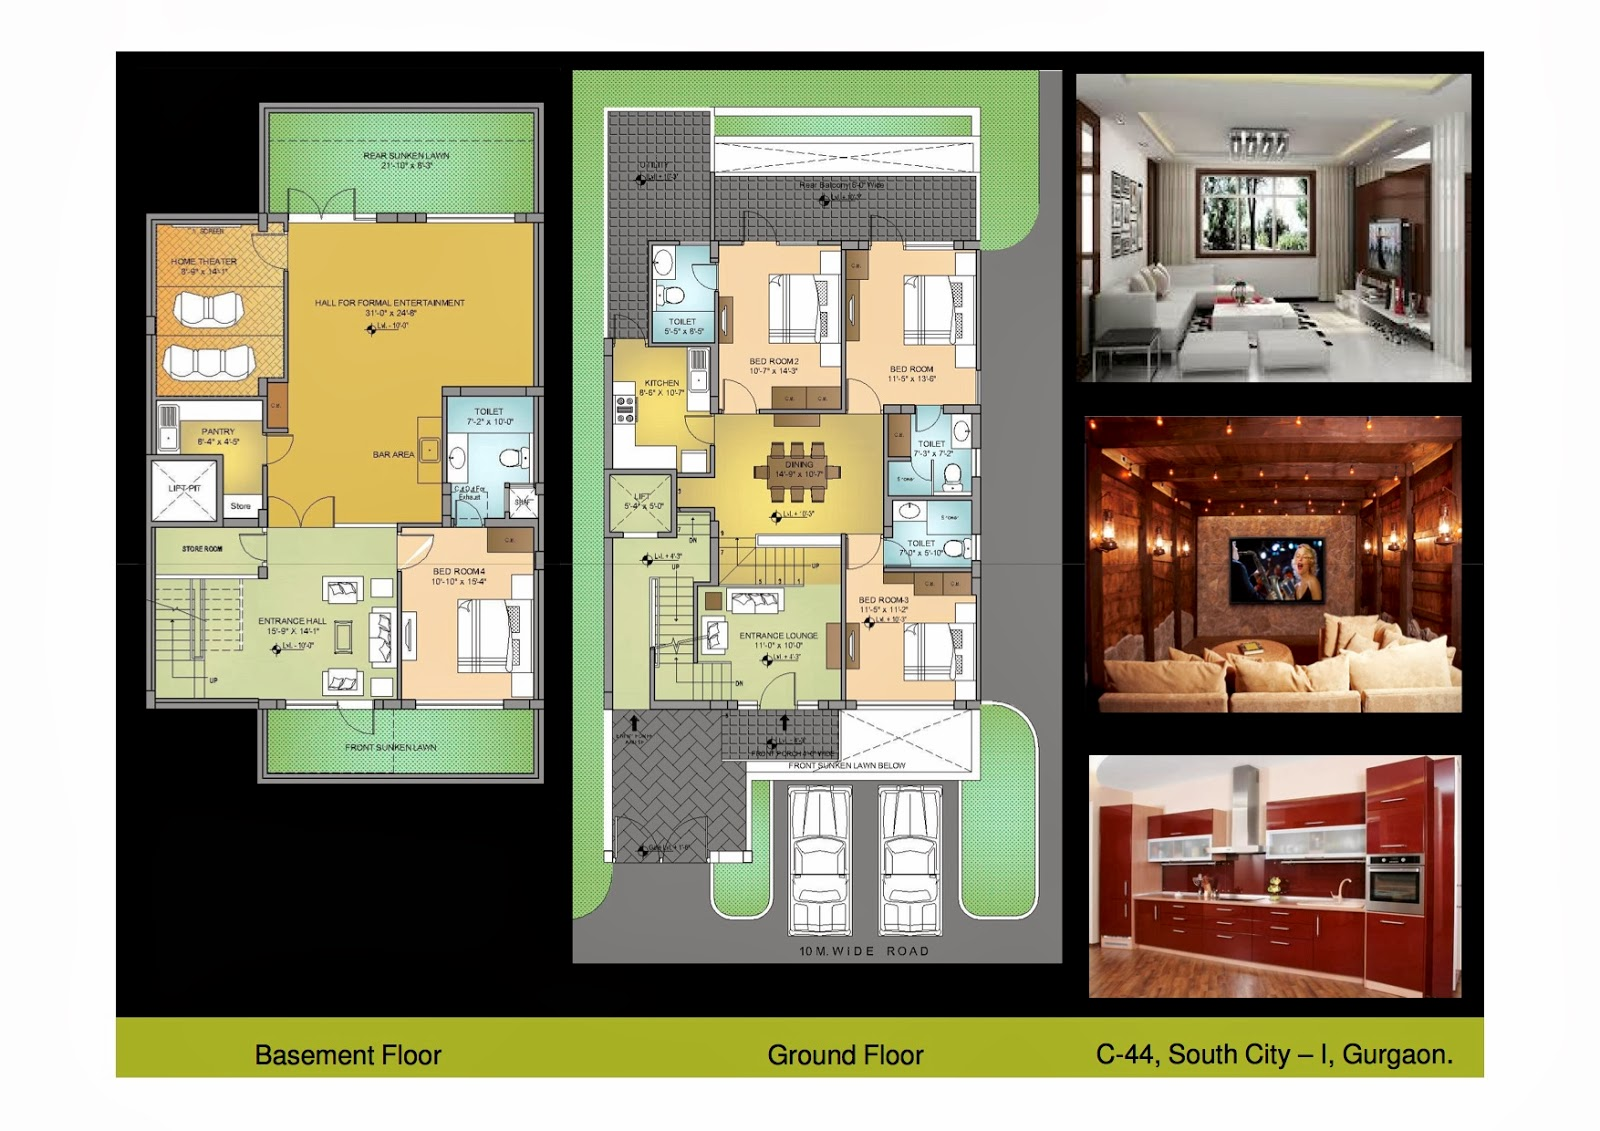 south city 1 gurgaon independent builder floors 250 sq yards plan first floor